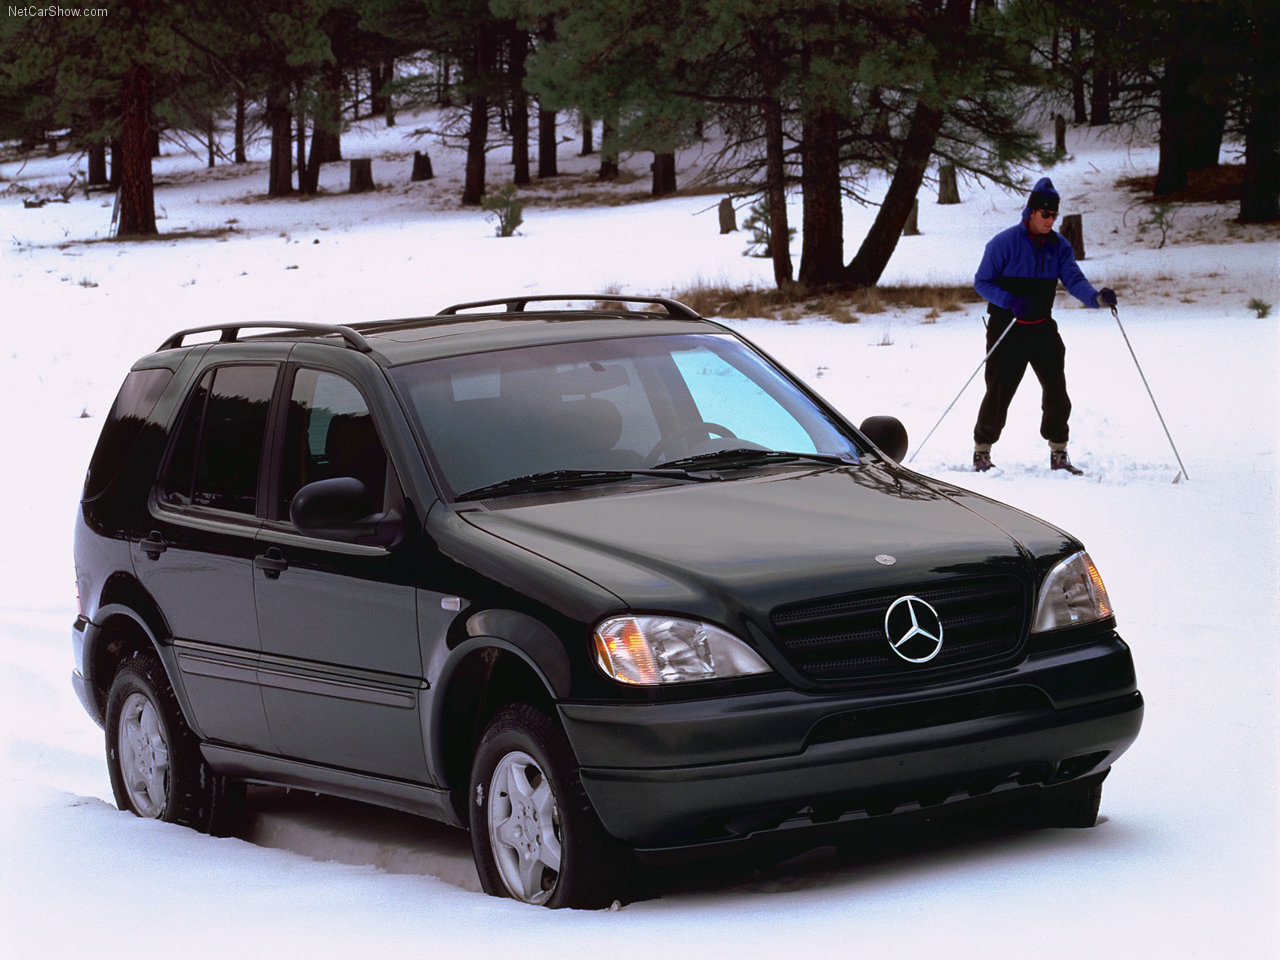 mercedes-benz ml 430-pic. 1